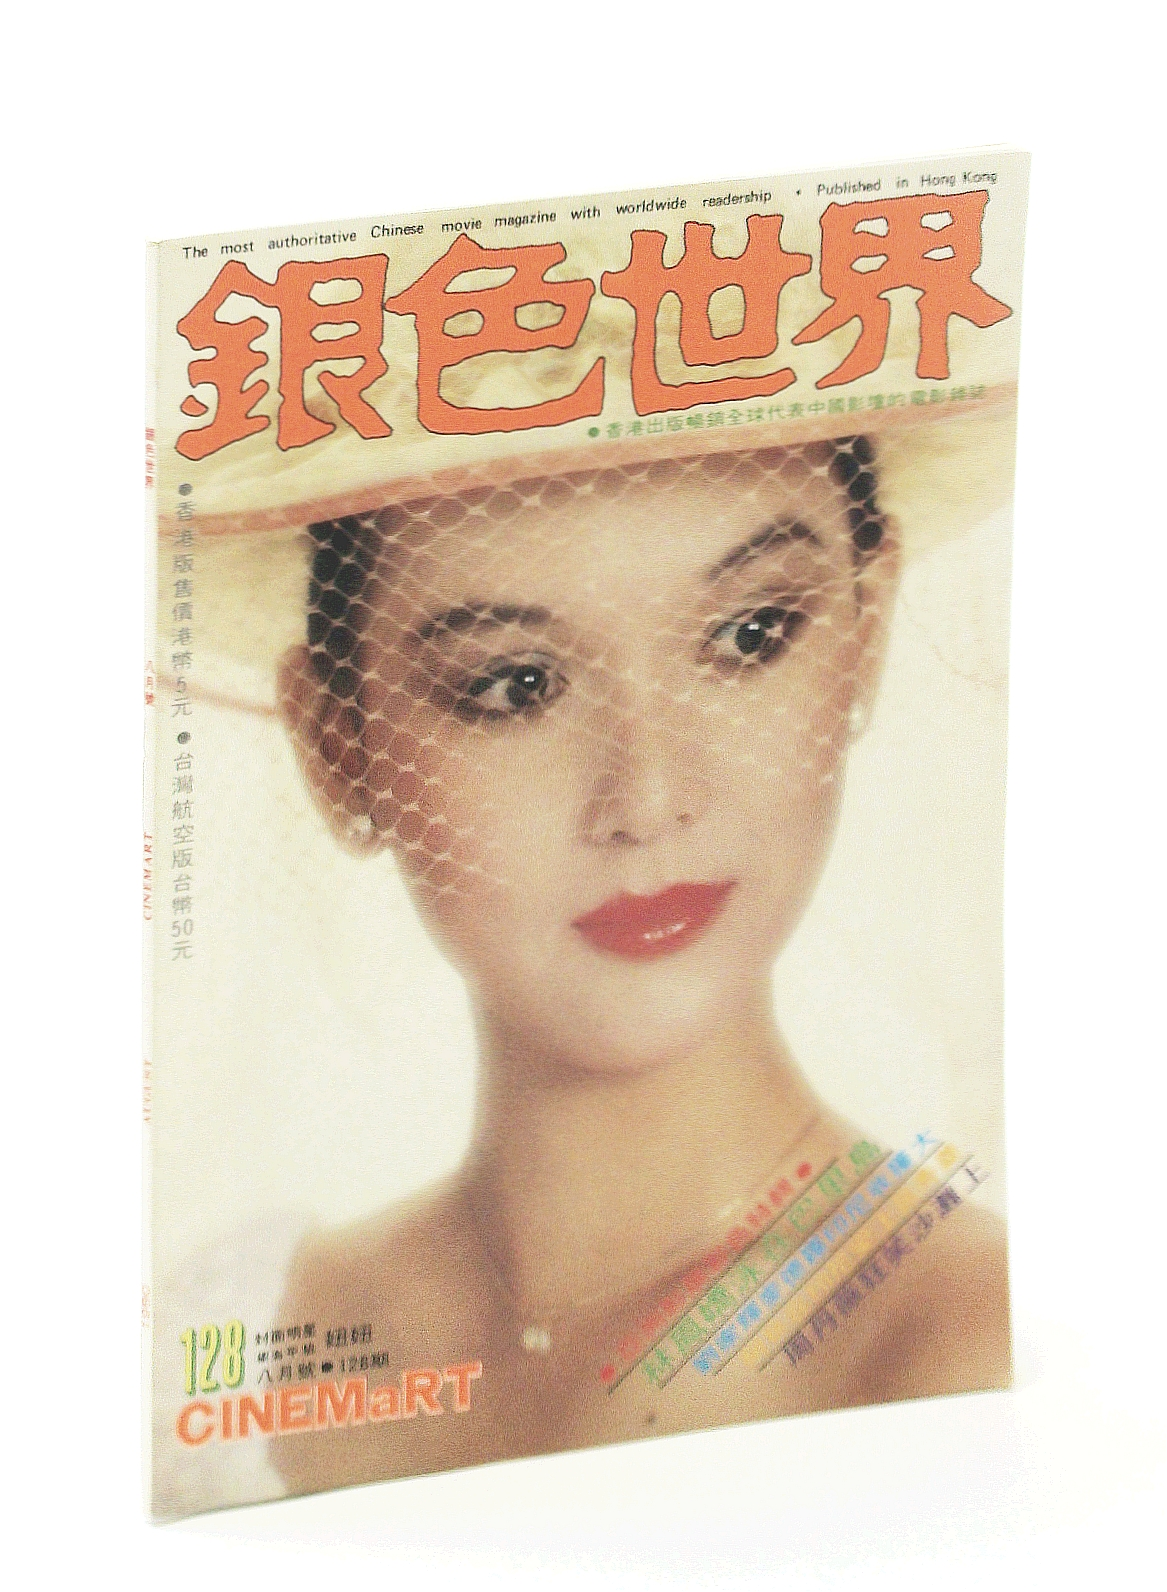 Image for Cinemart - The Most Authoritative Chinese Movie Magazine, August [Aug.] 1980, No. 128